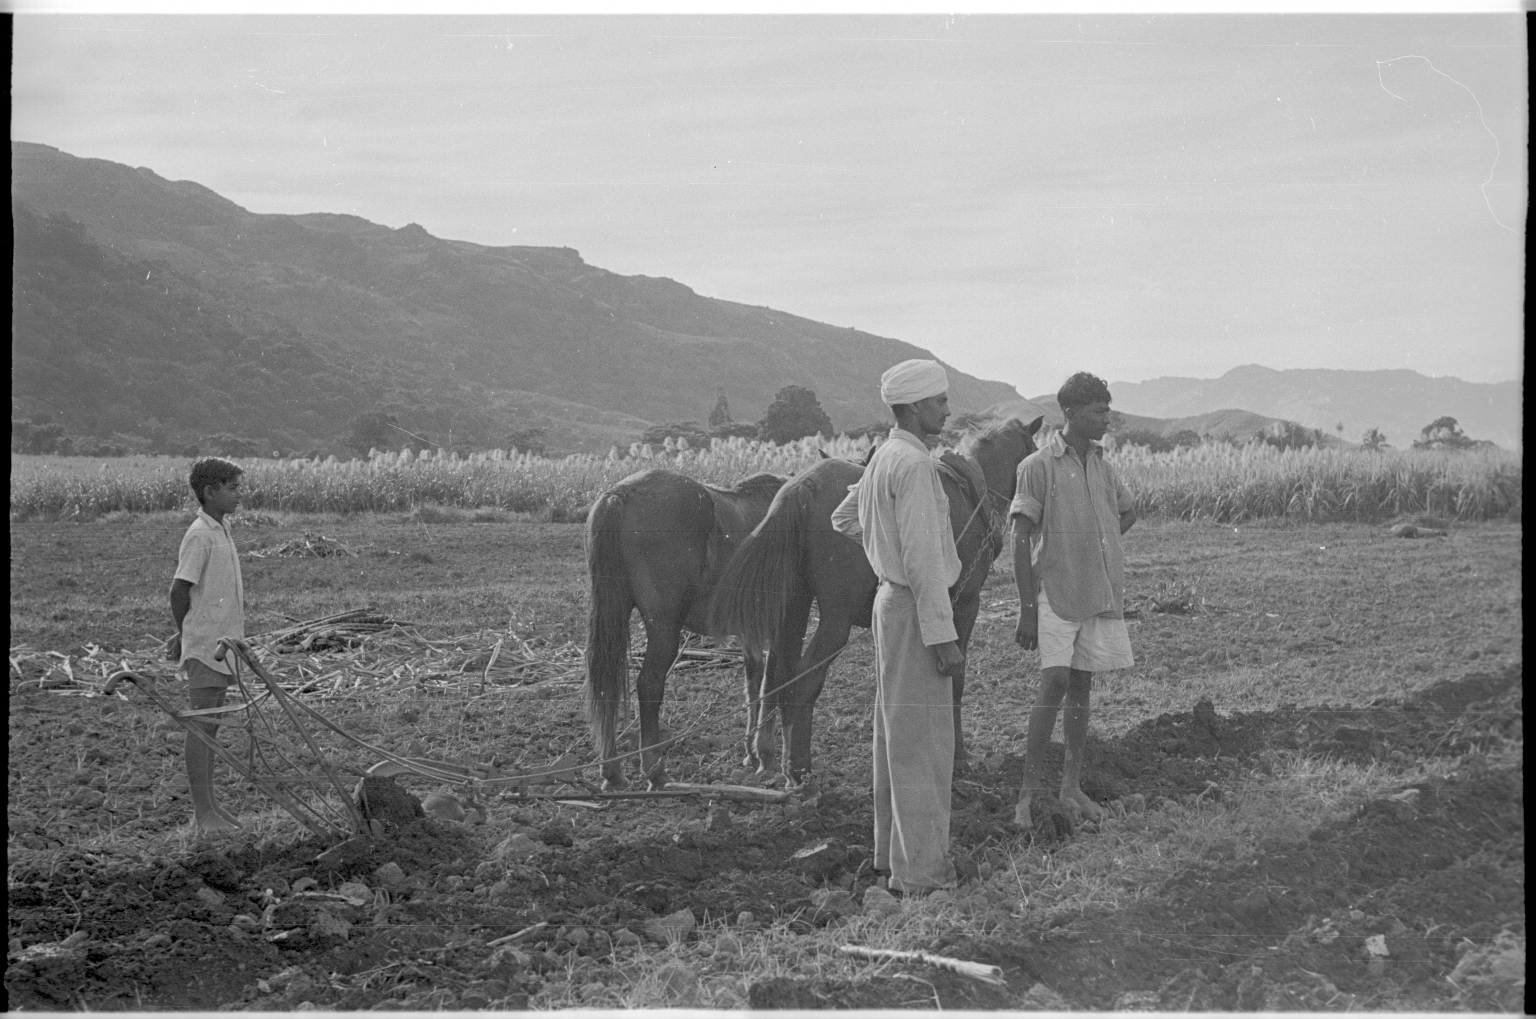 Fieldwork in Fiji